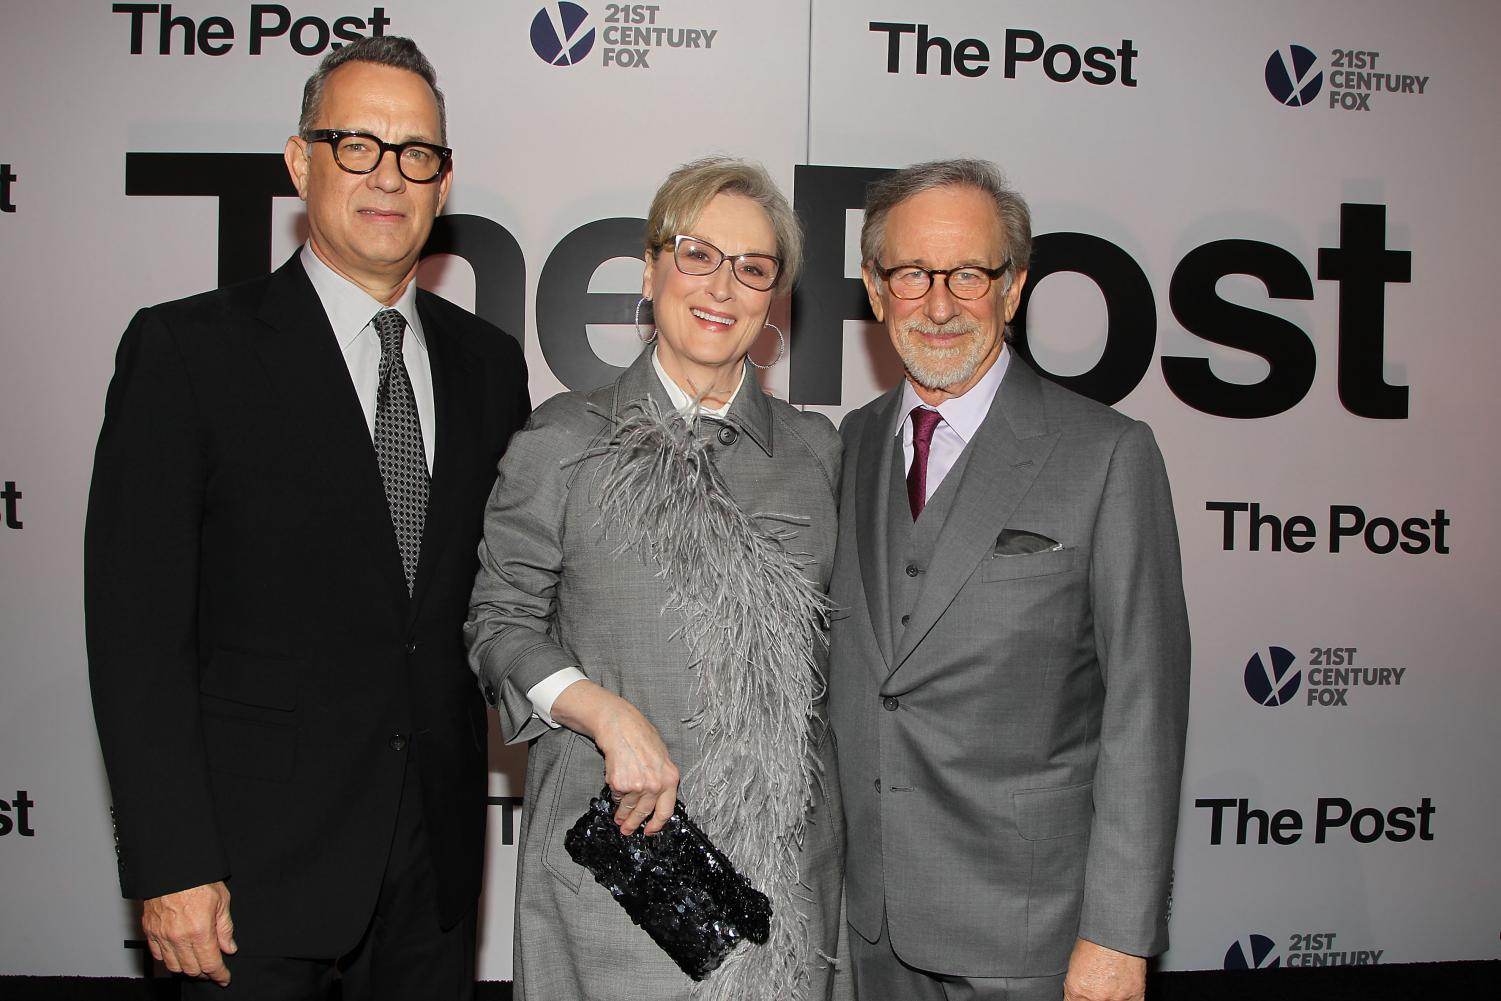 Tom Hanks (left), Meryl Streep and Steven Spielberg pose while promoting